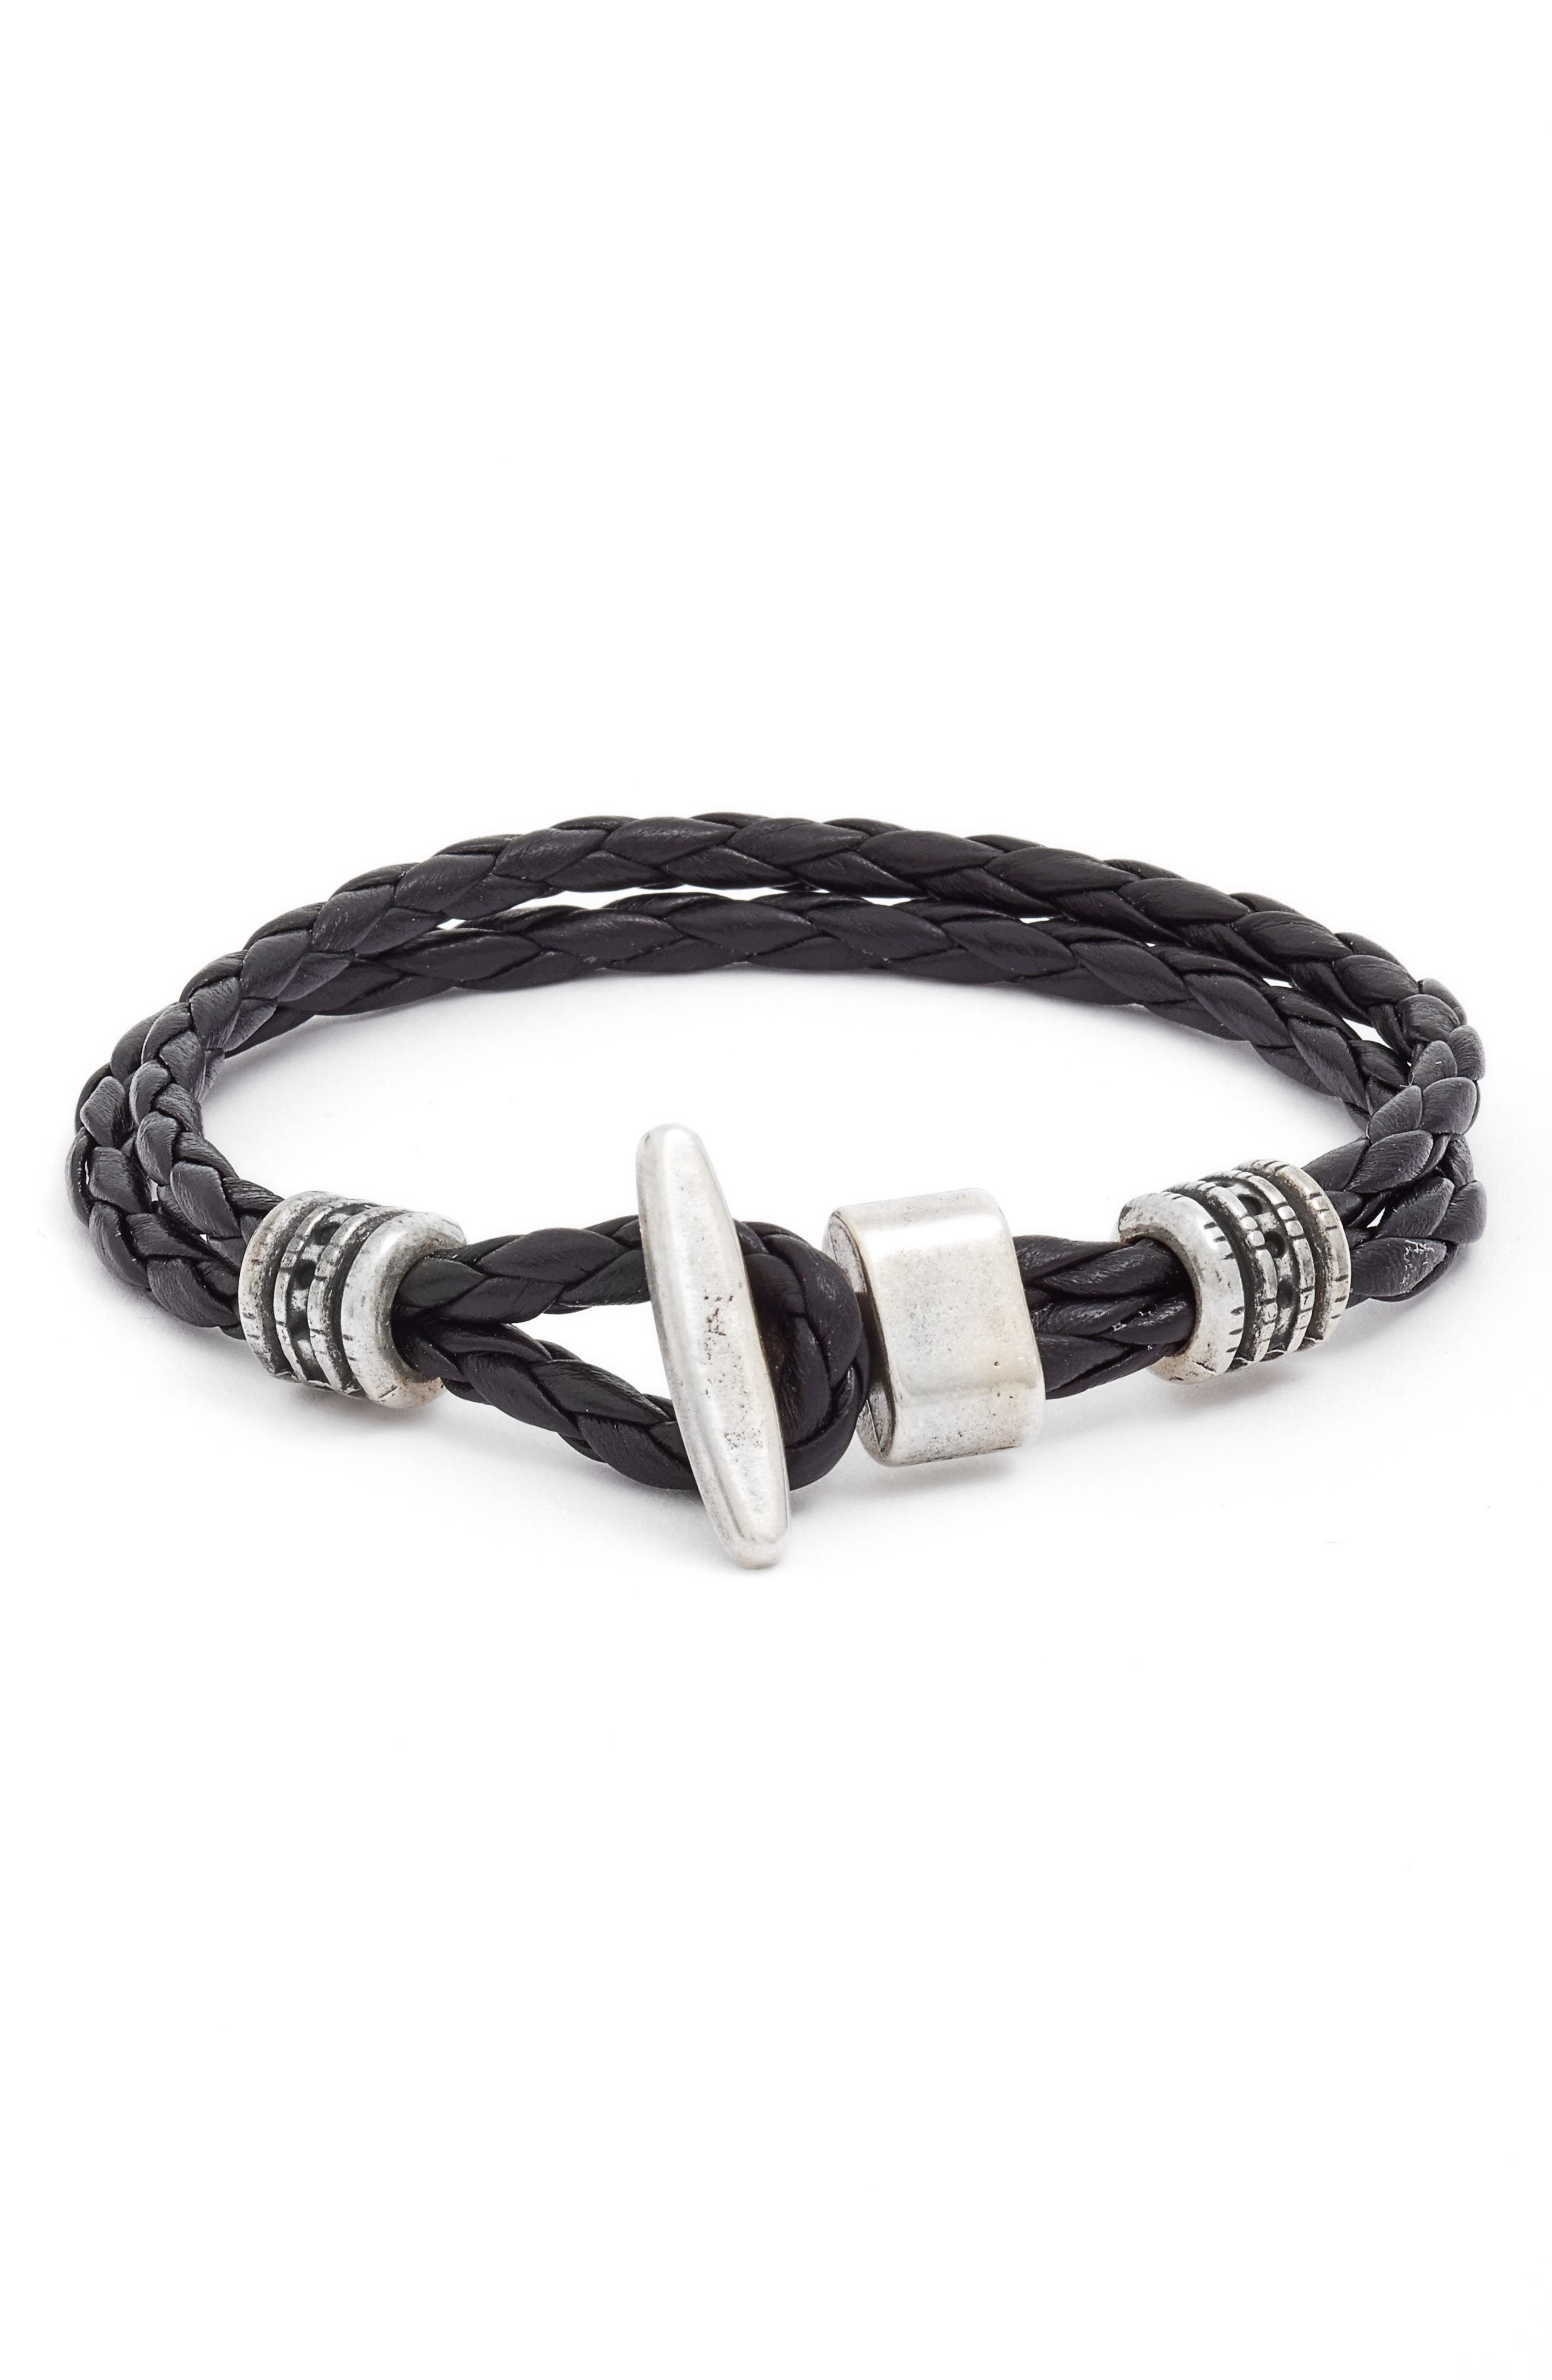 Braided Leather Bracelet,                             Alternate thumbnail 2, color,                             001